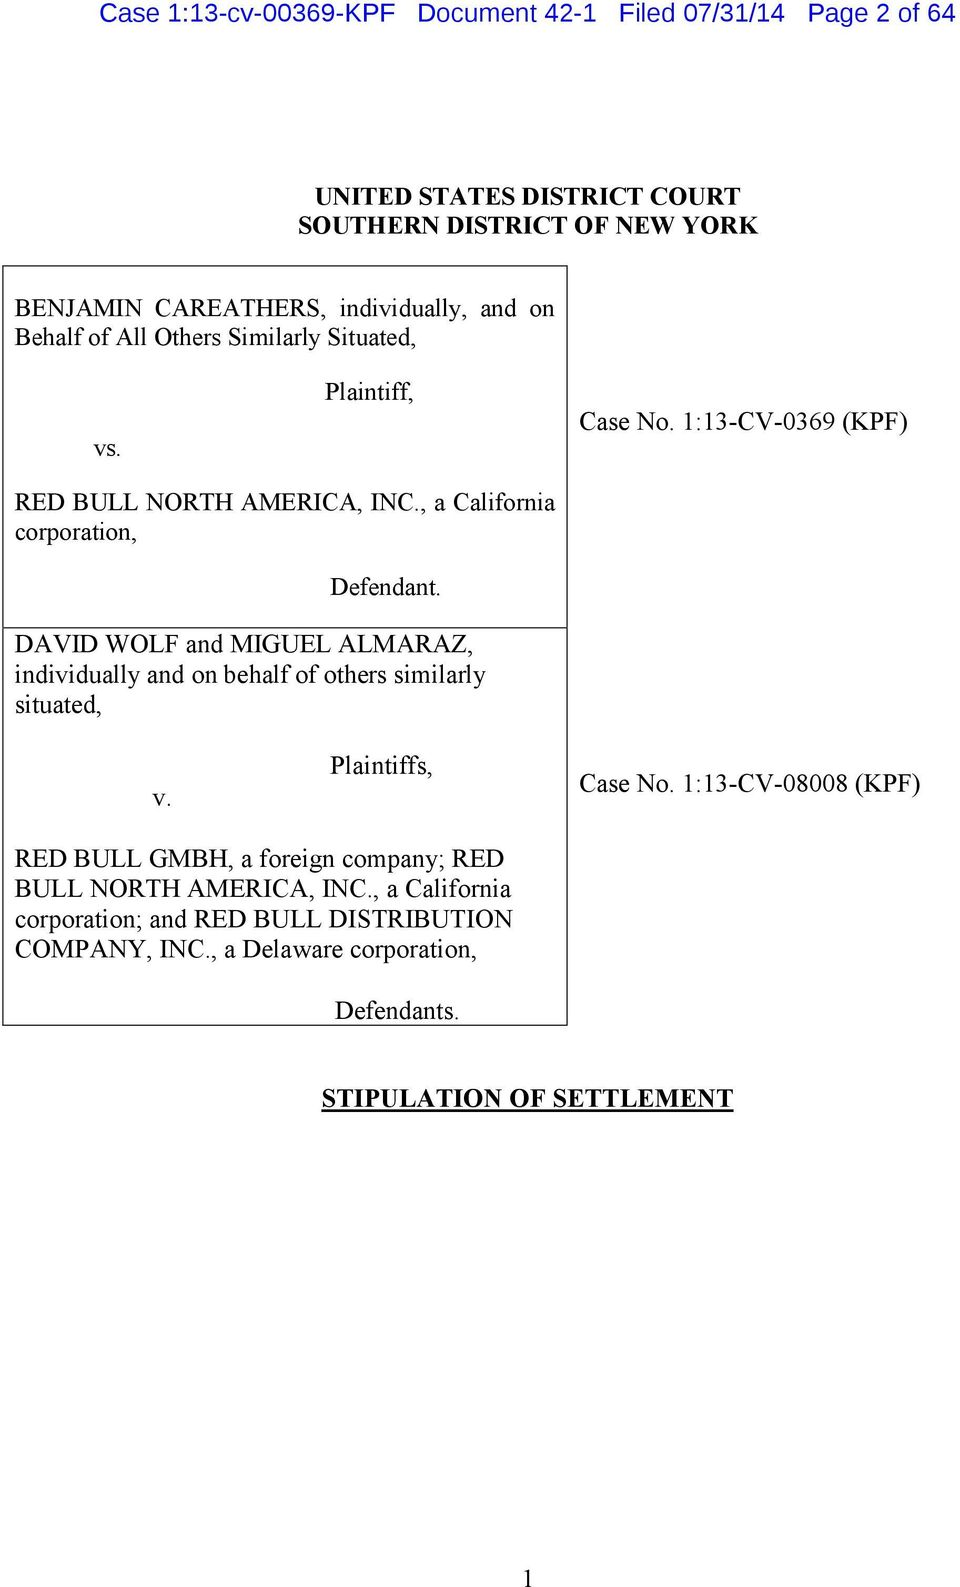 DAVID WOLF and MIGUEL ALMARAZ, individually and on behalf of others similarly situated, v. Plaintiffs, Case No.